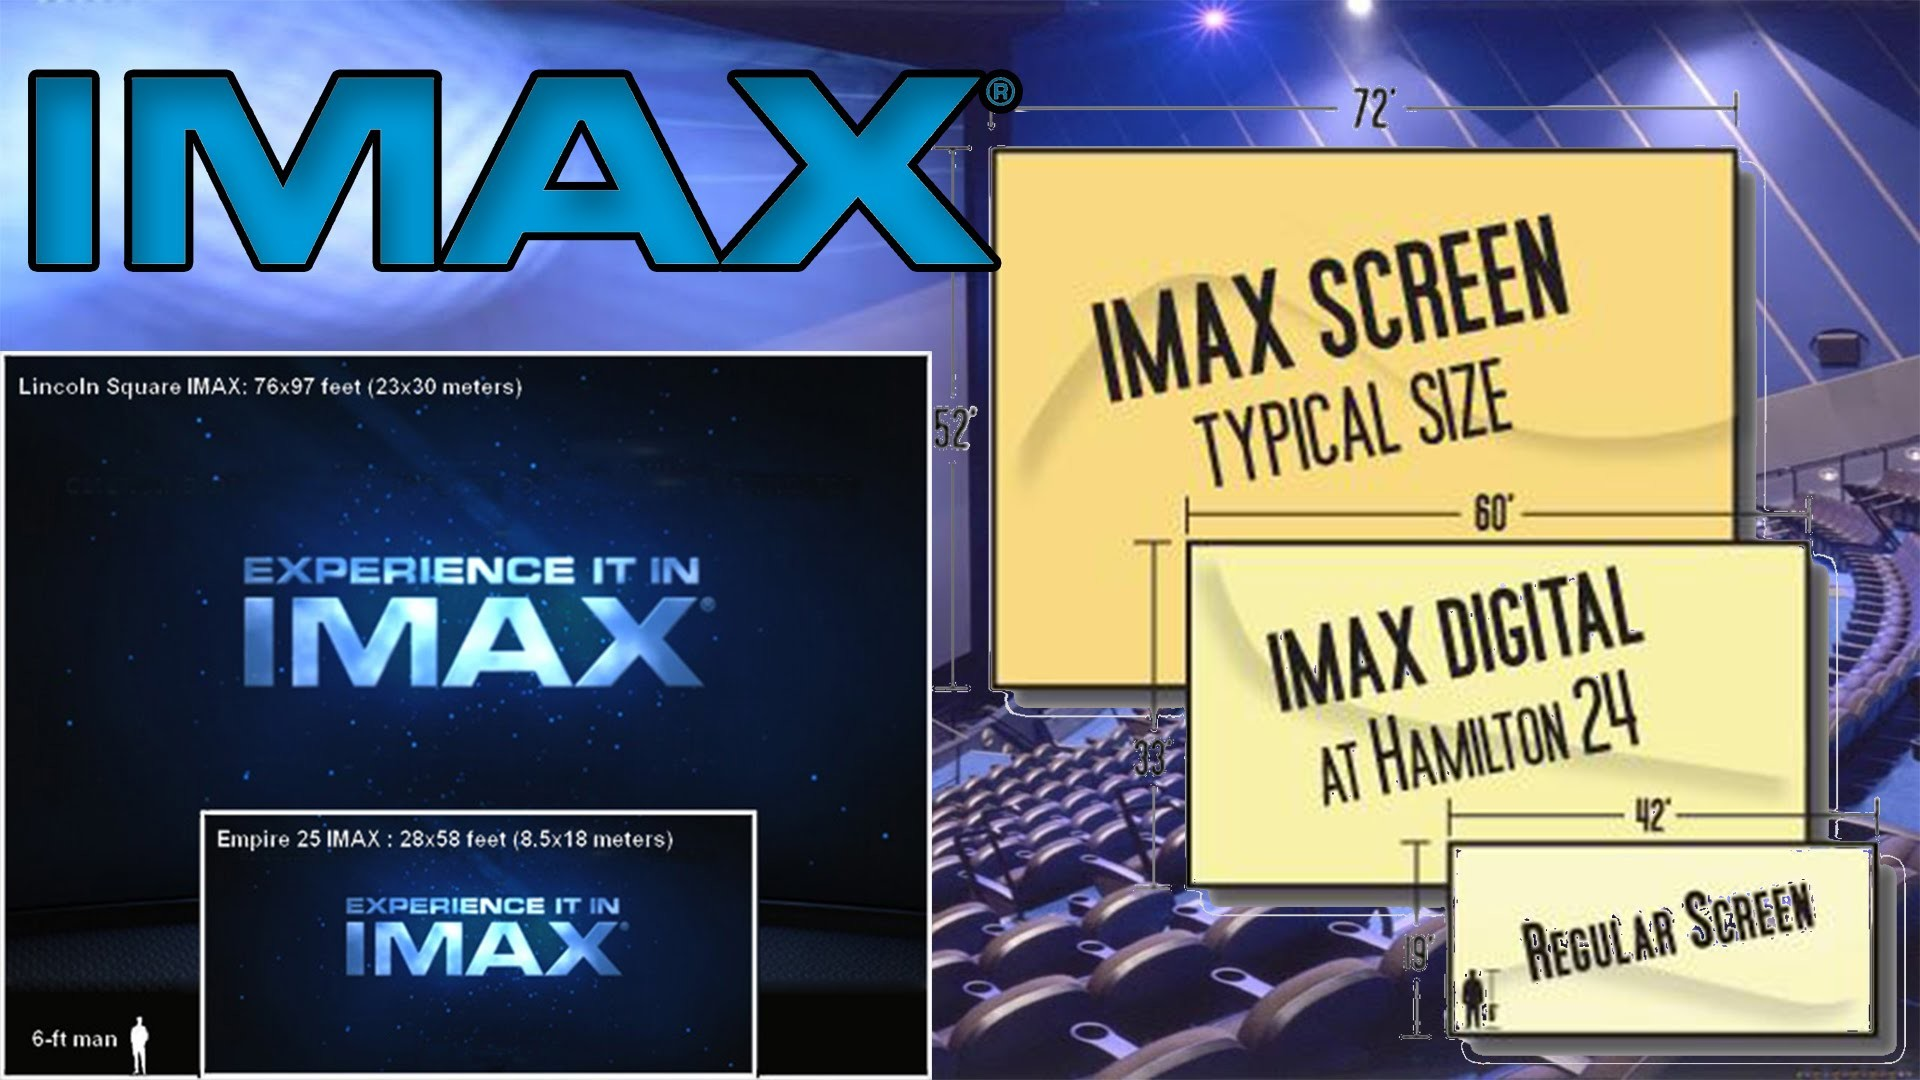 1920x1080 Movie Screen Sizes - IMAX